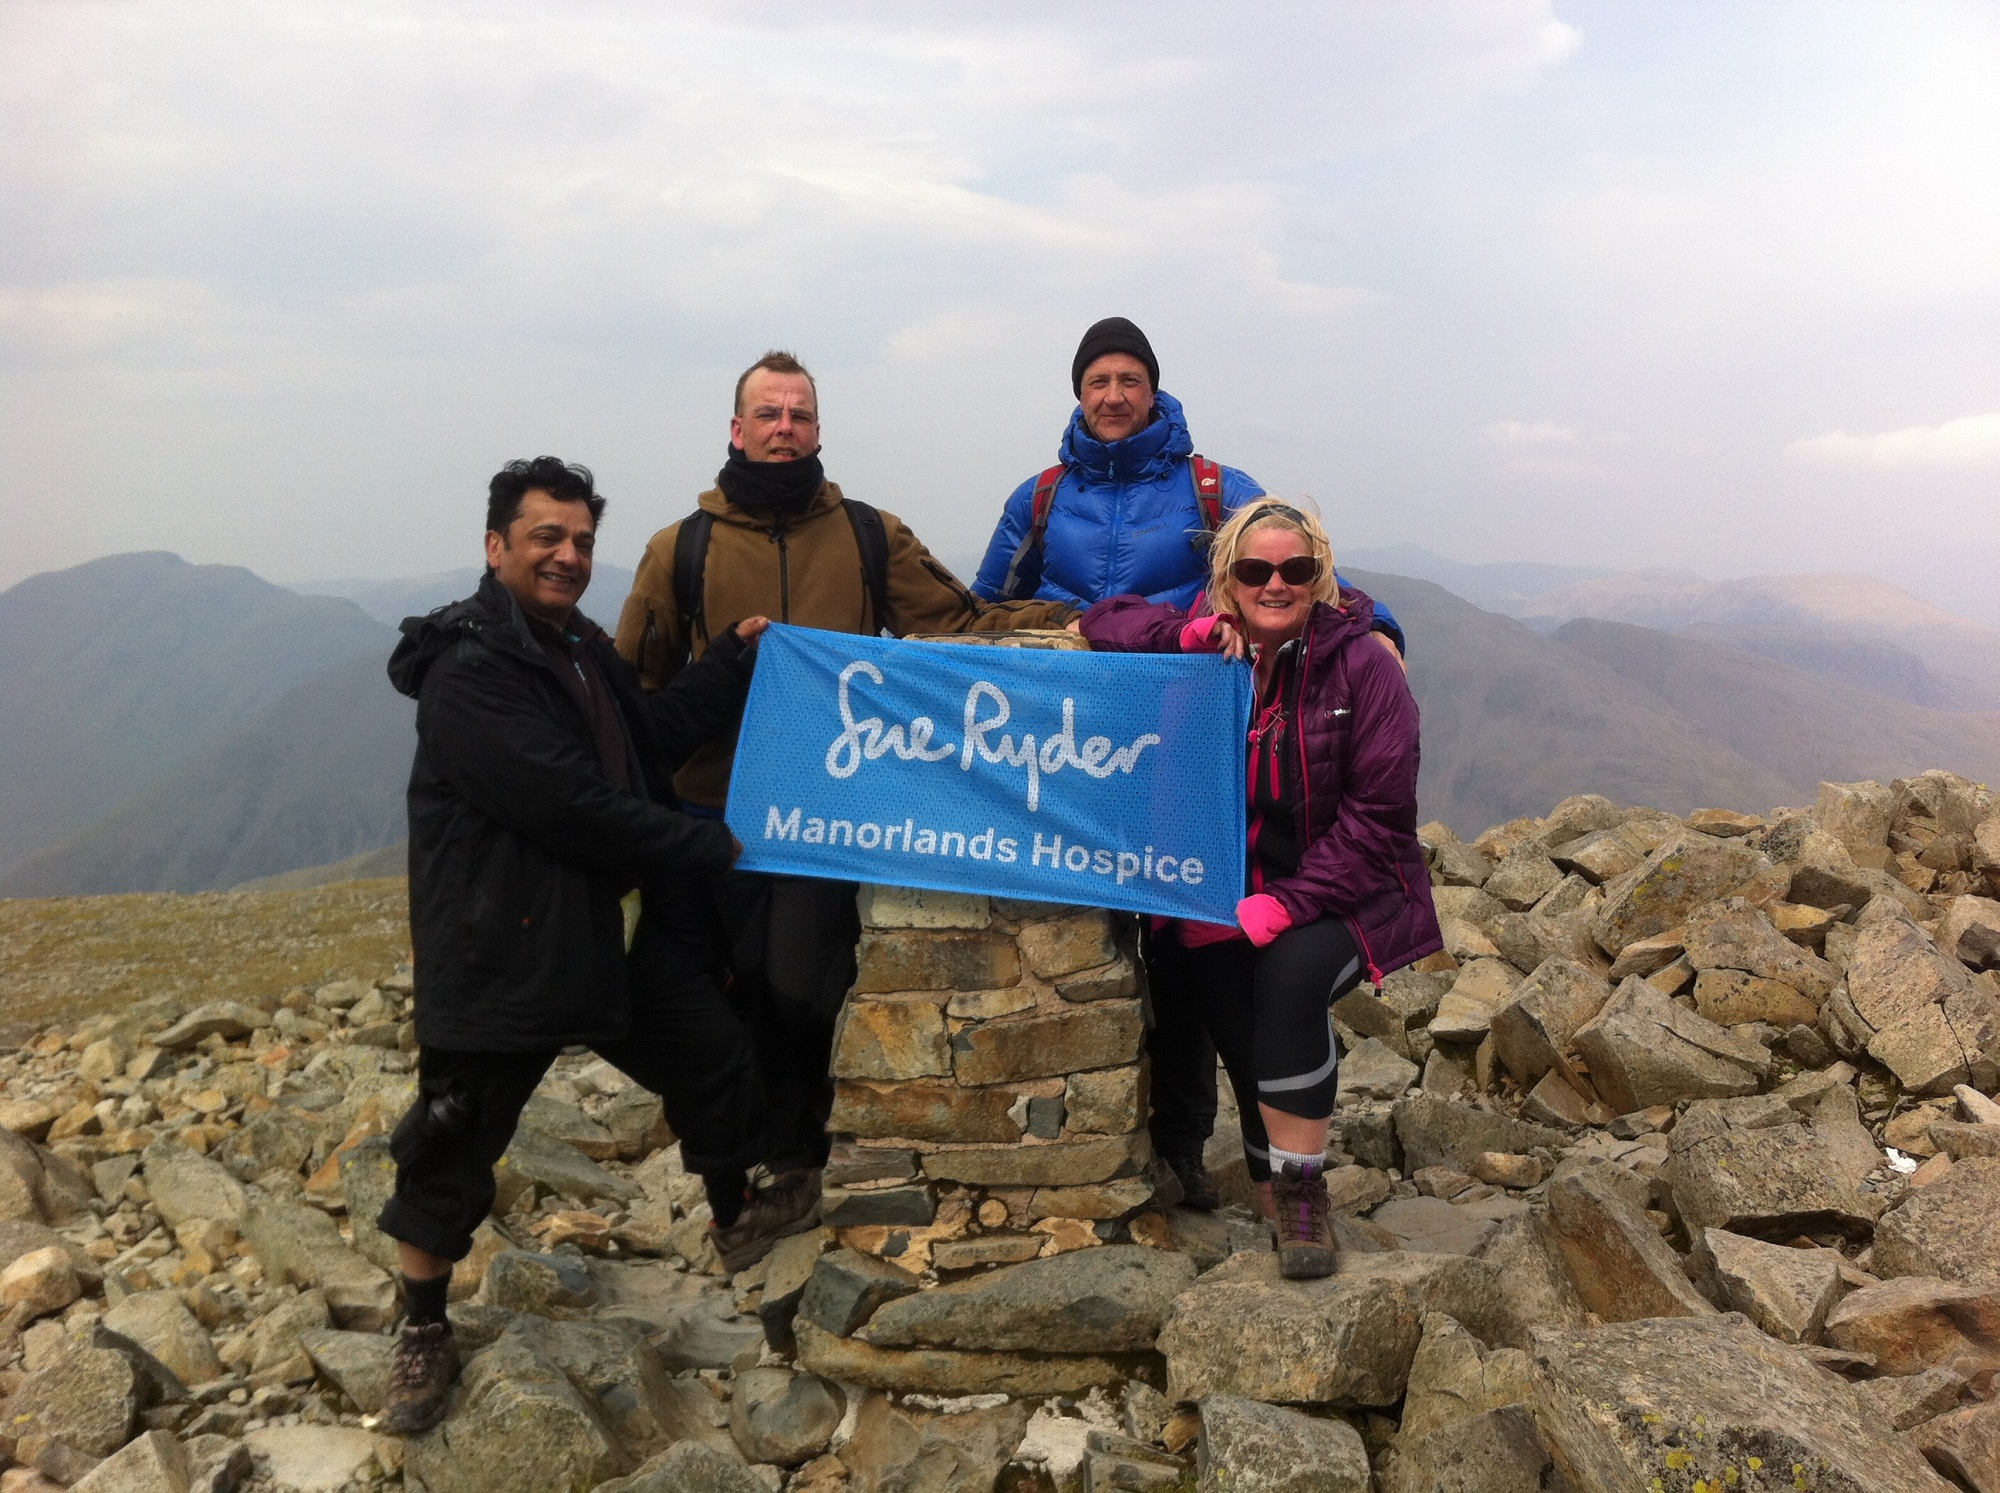 The Pike & Paddle team, from left, Jawaid Iqbal, Iain Nutter, Ev Pritchard and Jayne Harris, on Scafell Pike